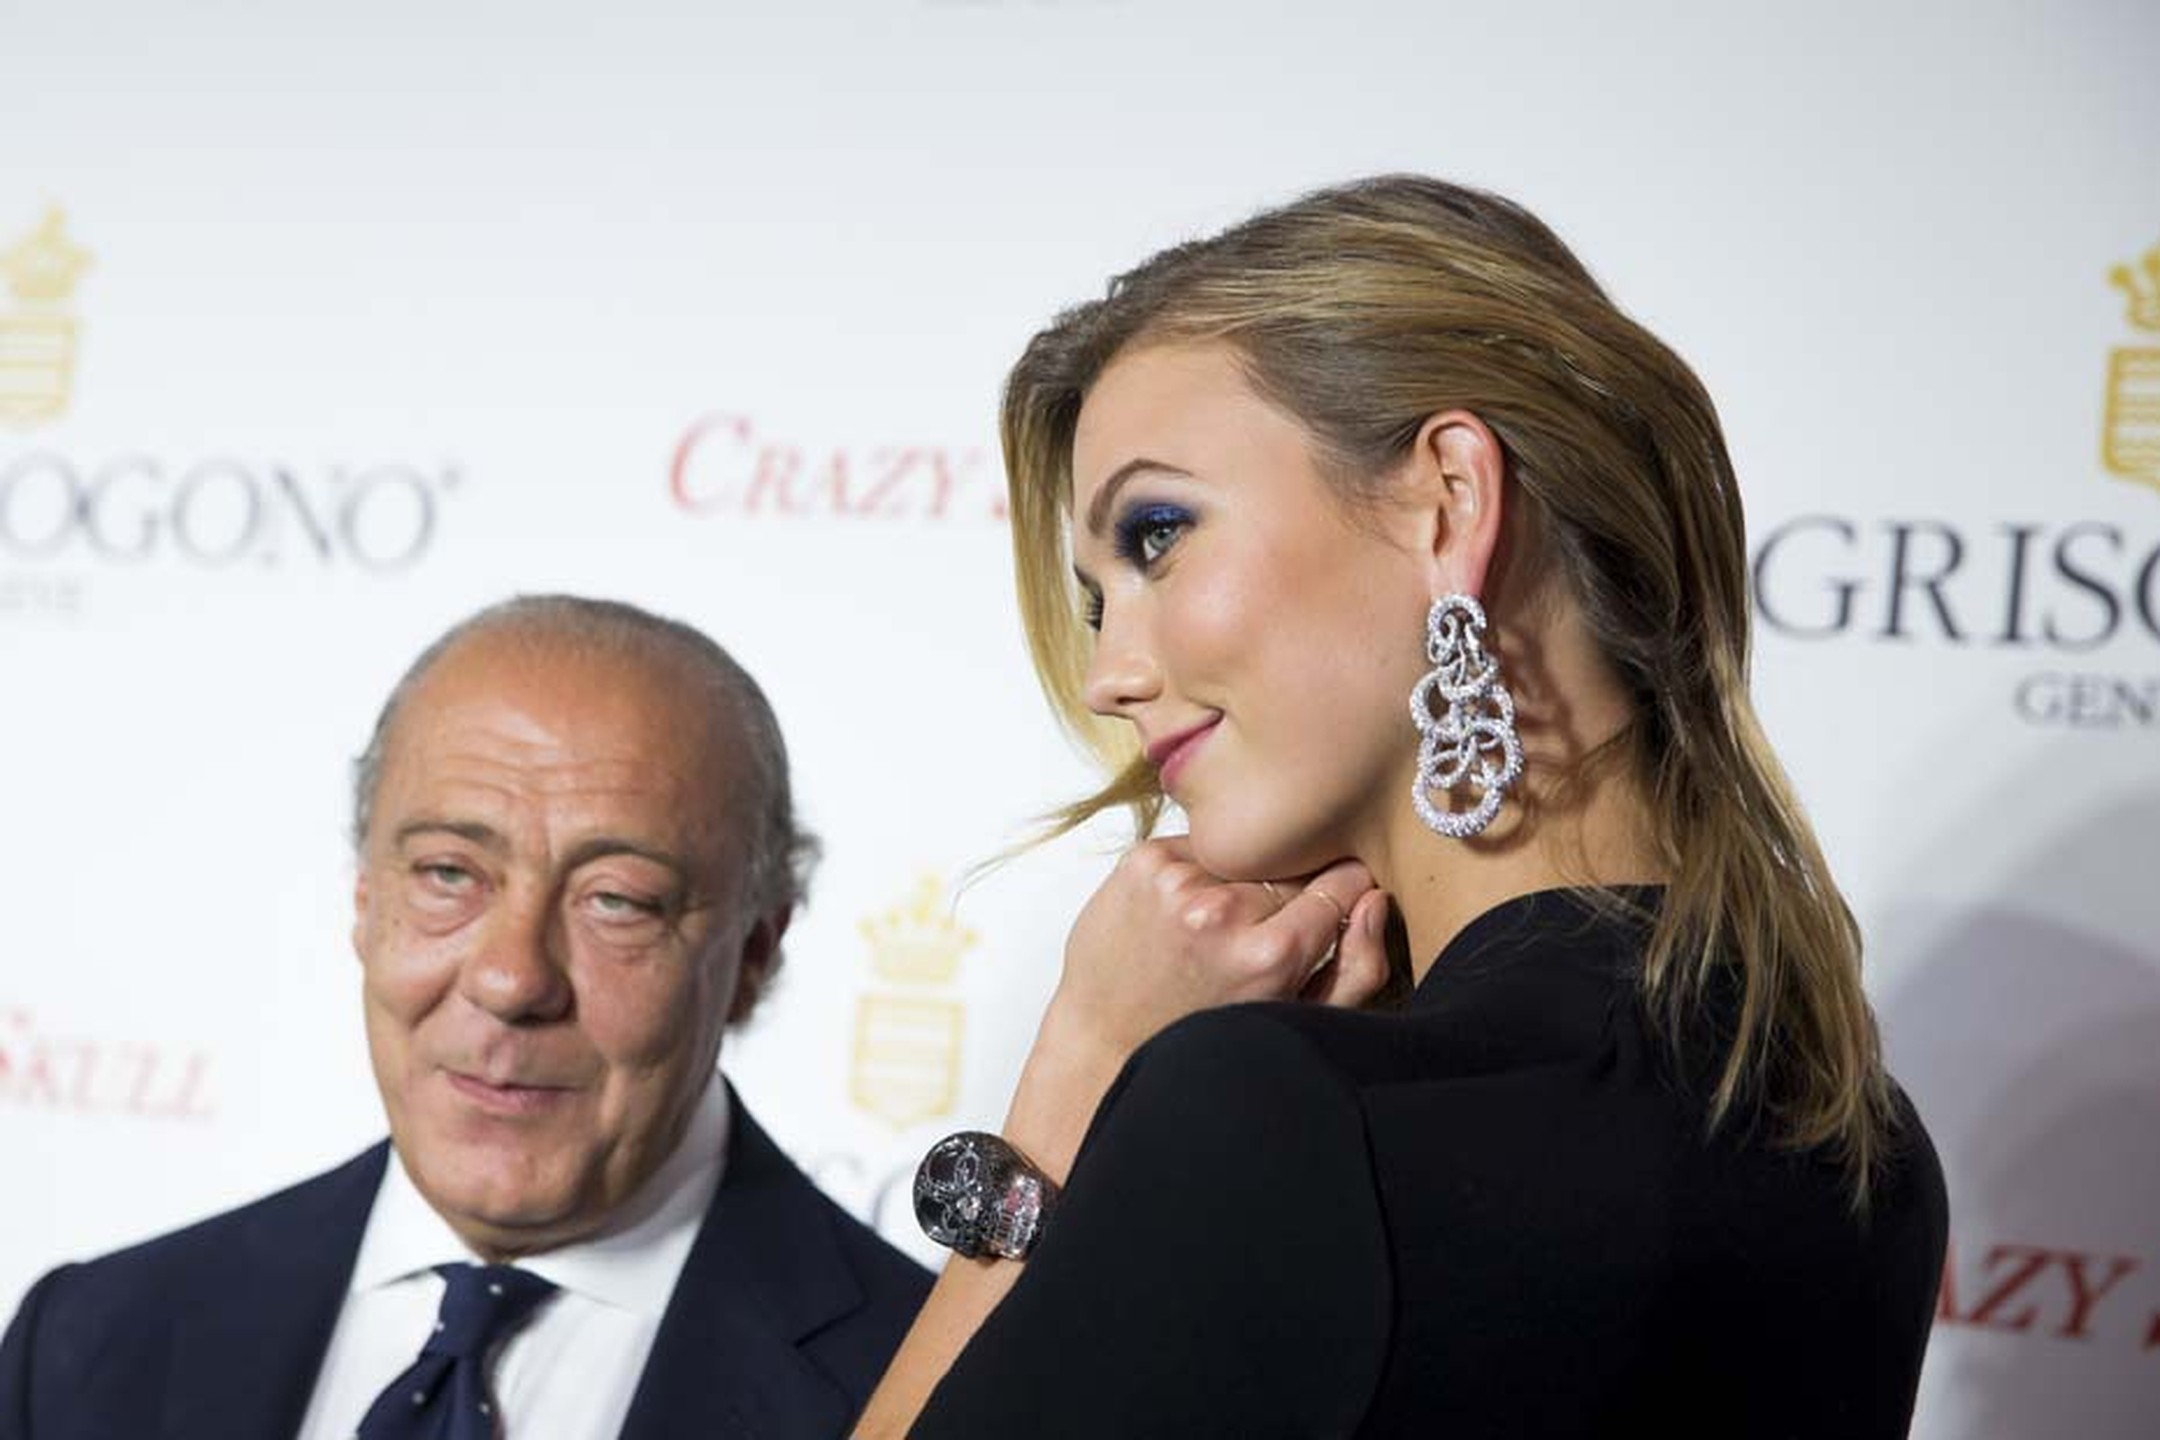 Fawaz Gruosi stands with Karlie Kloss who shows off the larger-than life Crazy Skull watch with black diamonds.